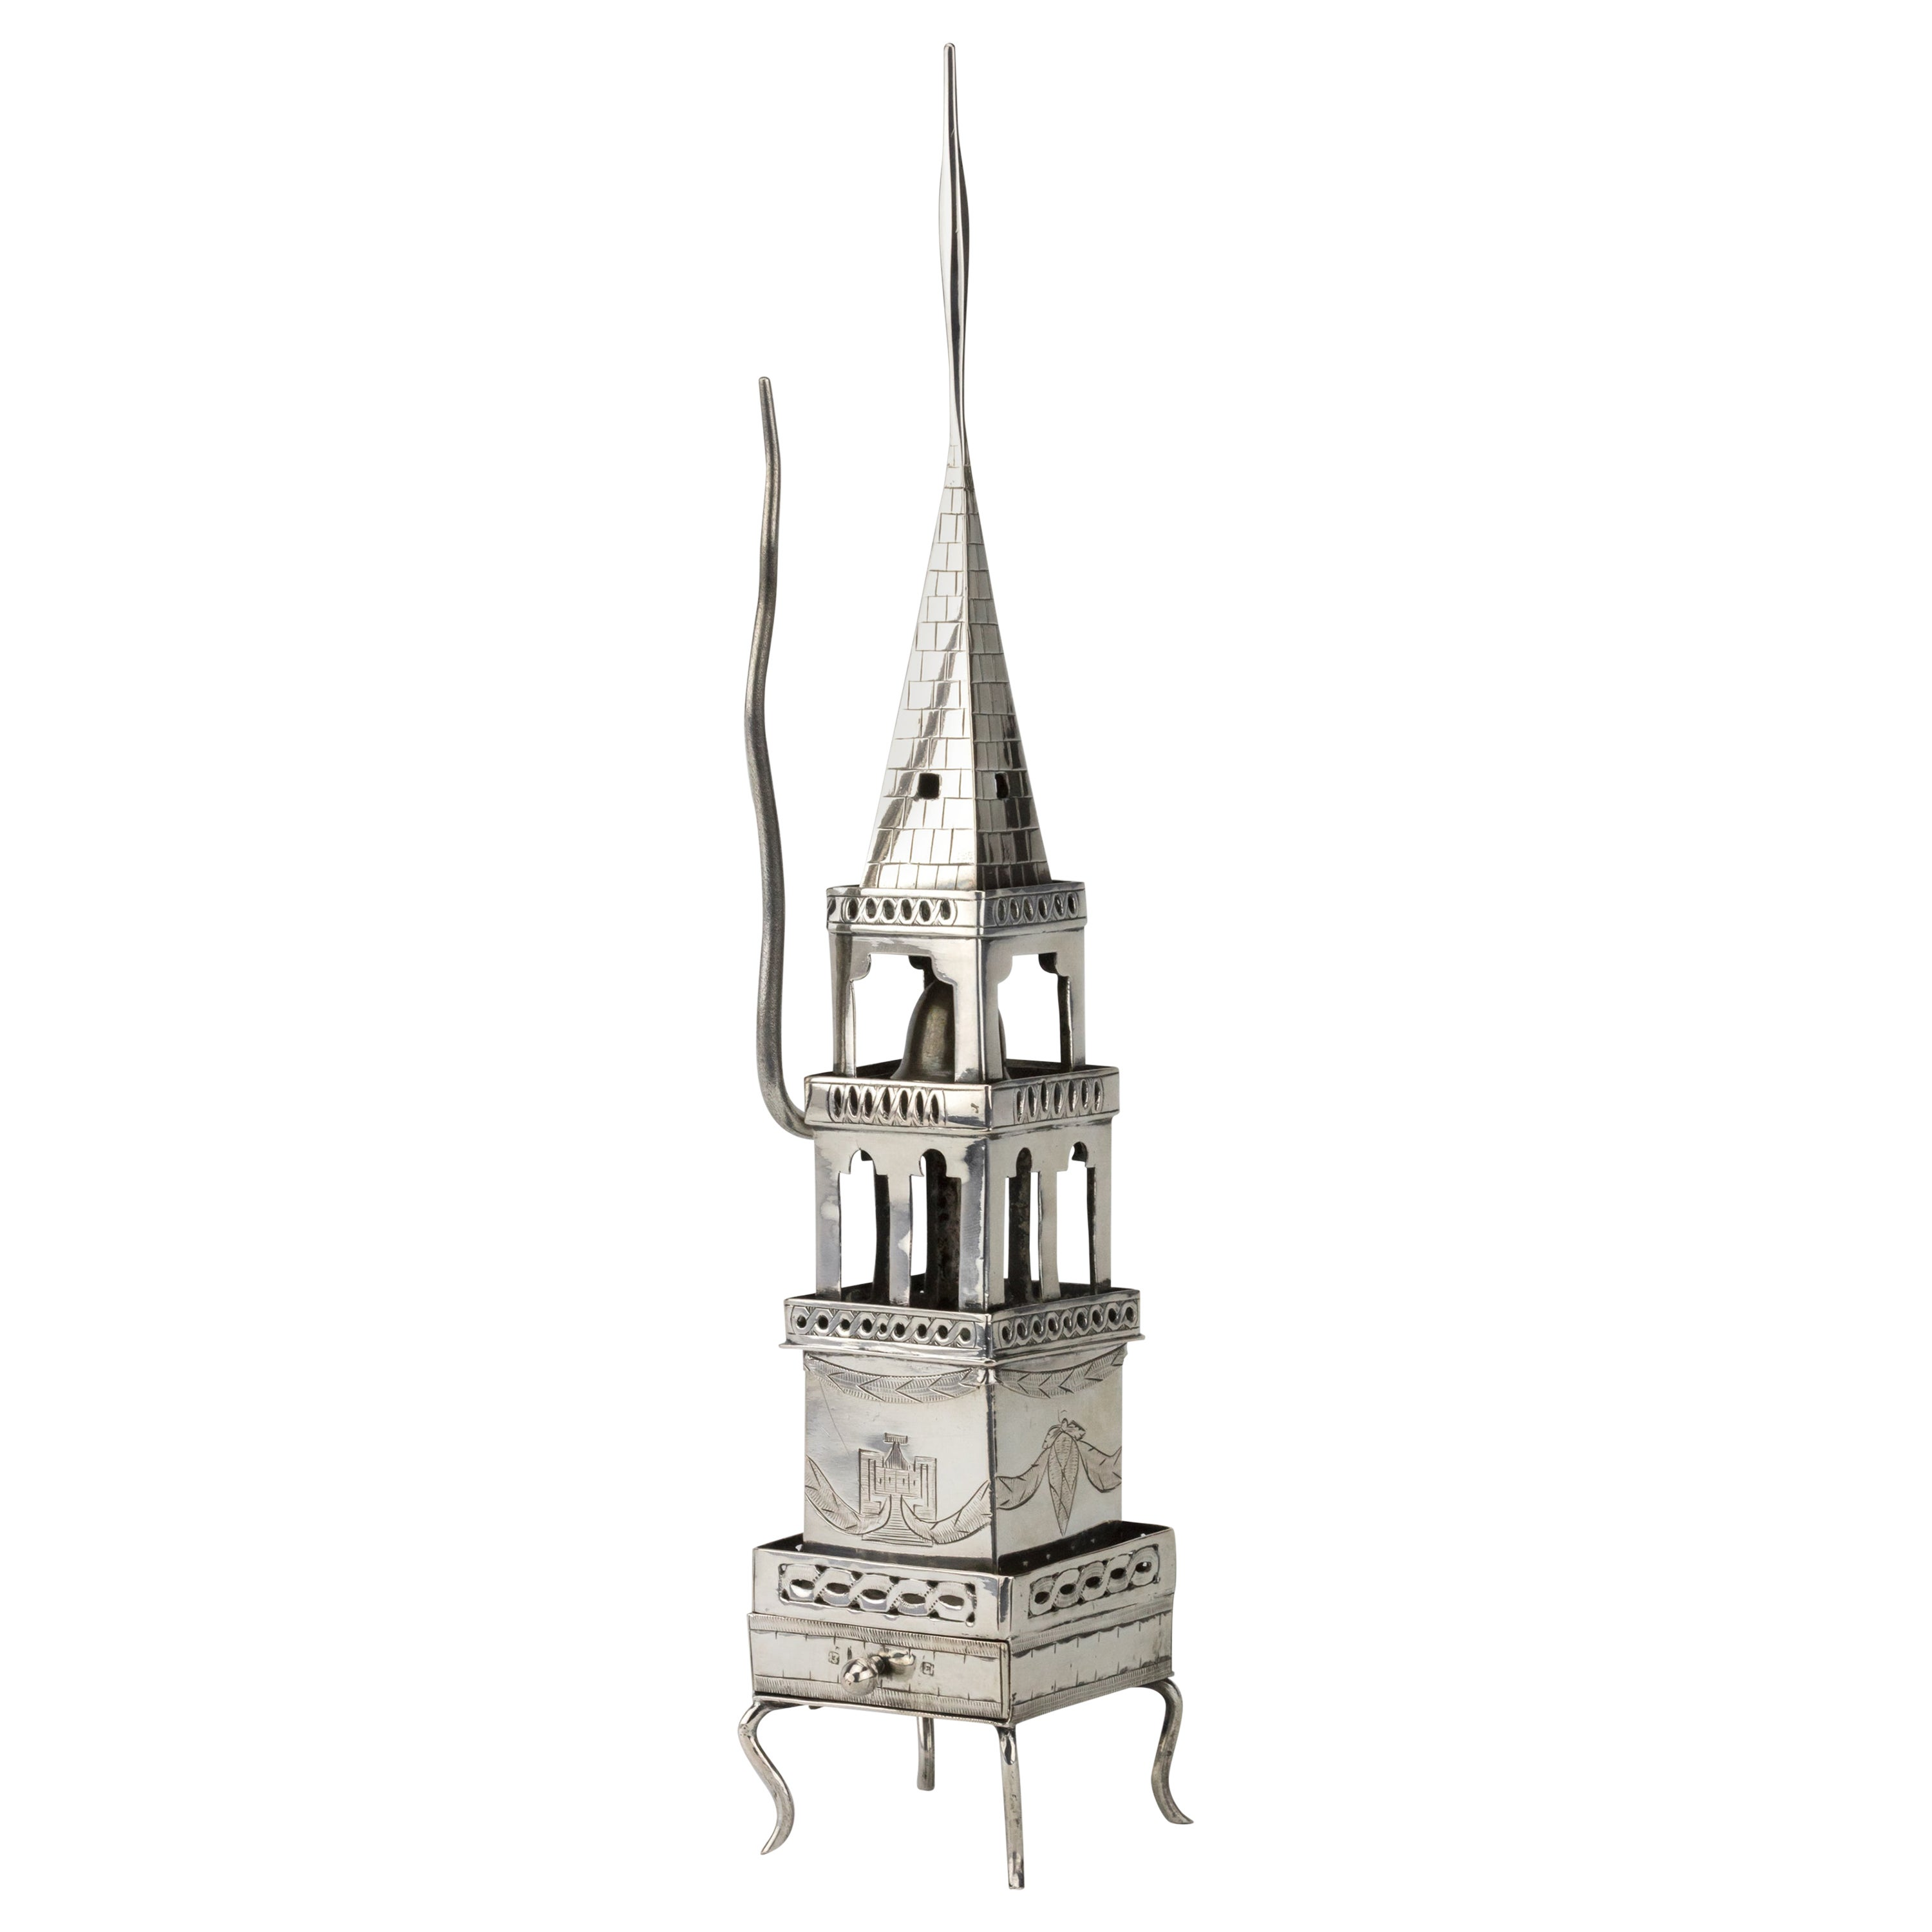 Early 19th Century Habsburg Empire Silver Spice Tower and Havdalah Compendium